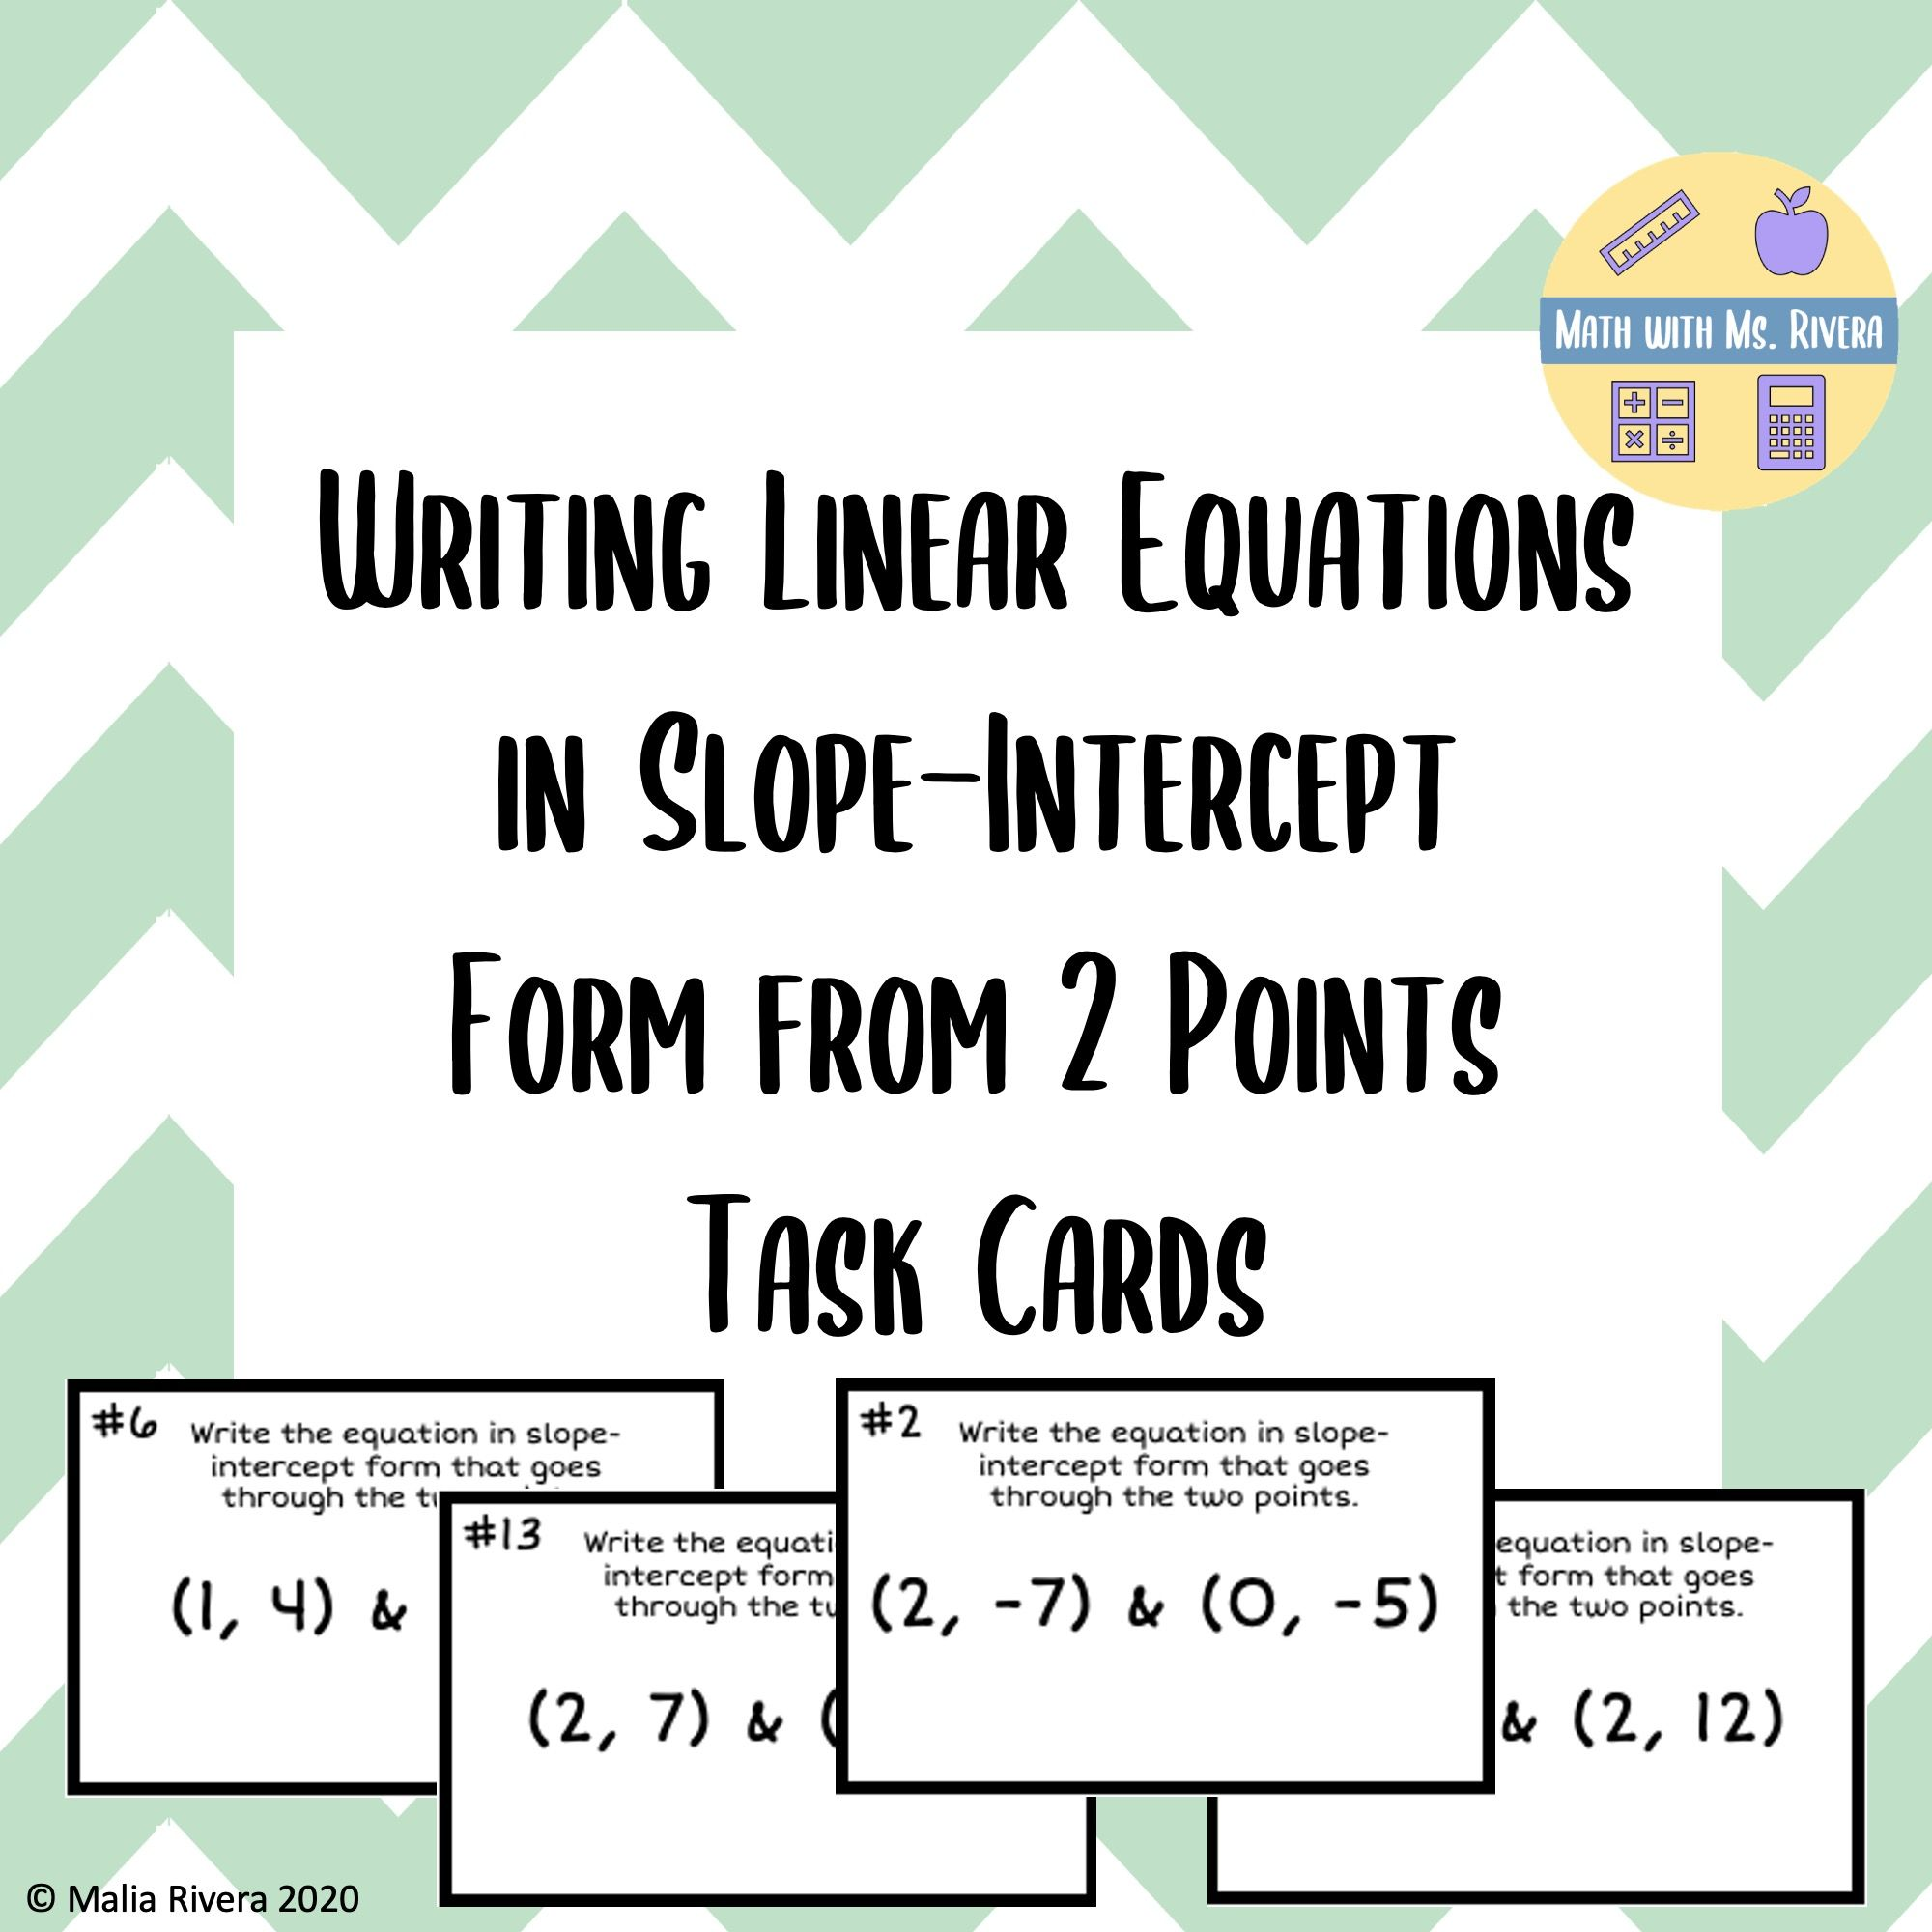 Writing Linear Equations In Slope Intercept Form From 2